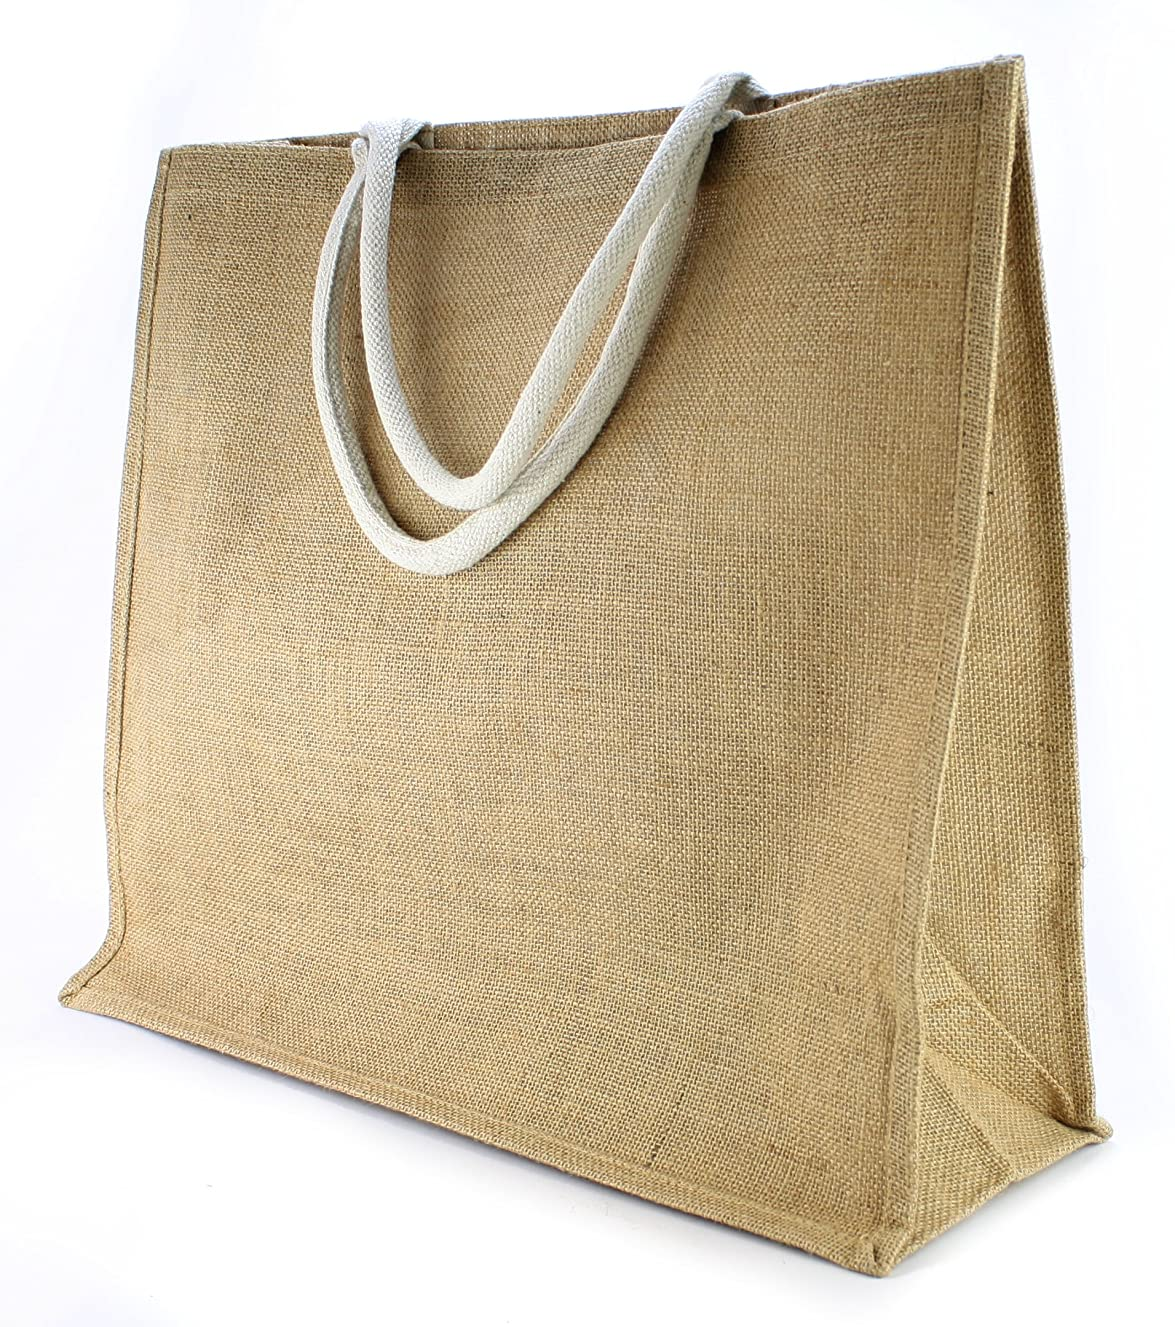 Kel-Toy NJB31812 Burlap Jute Bag, 20 by 7 by 18-Inch, Natural